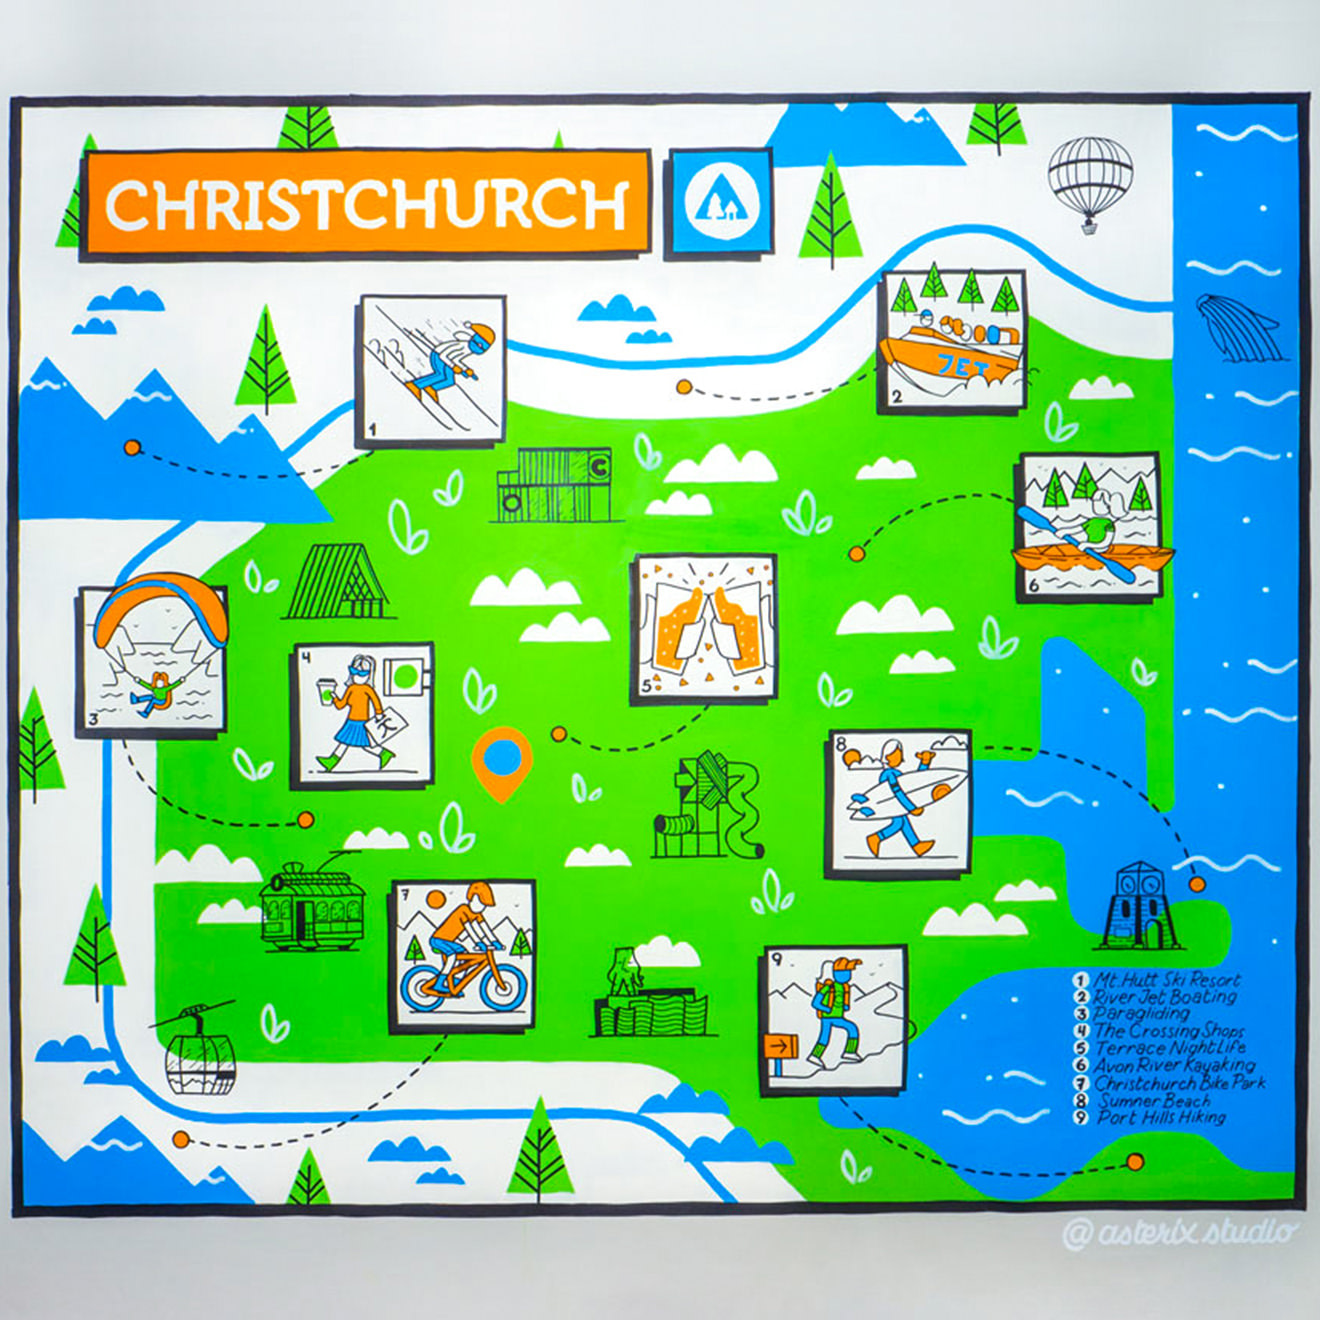 Wall mural painting of a map of Christchurch. Displays activities that tourists would enjoy in the city